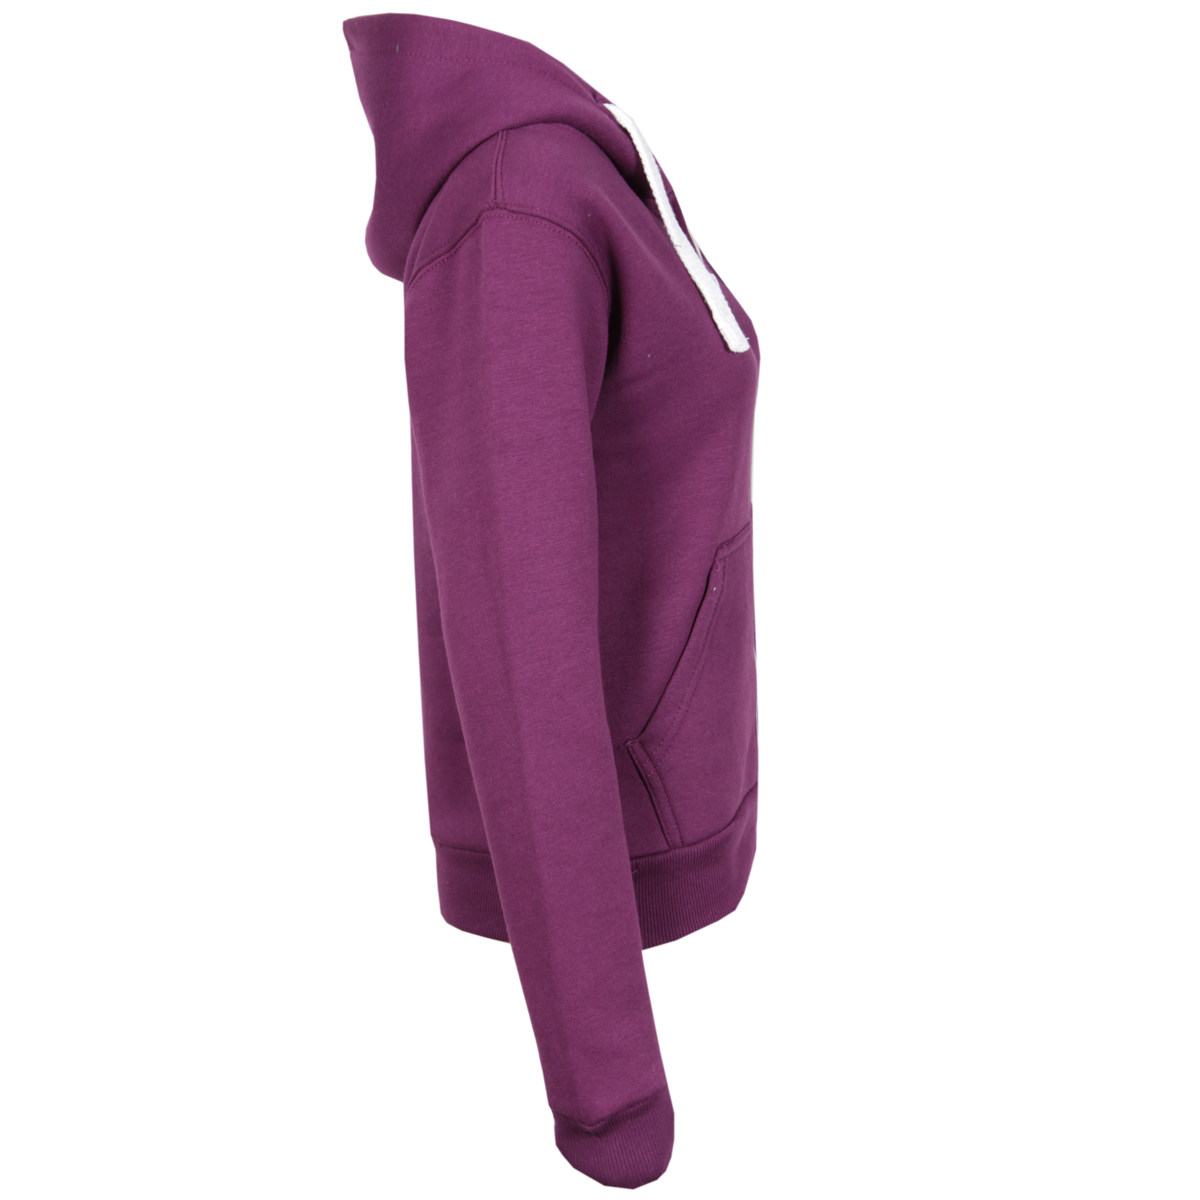 Purple zip up hoodie